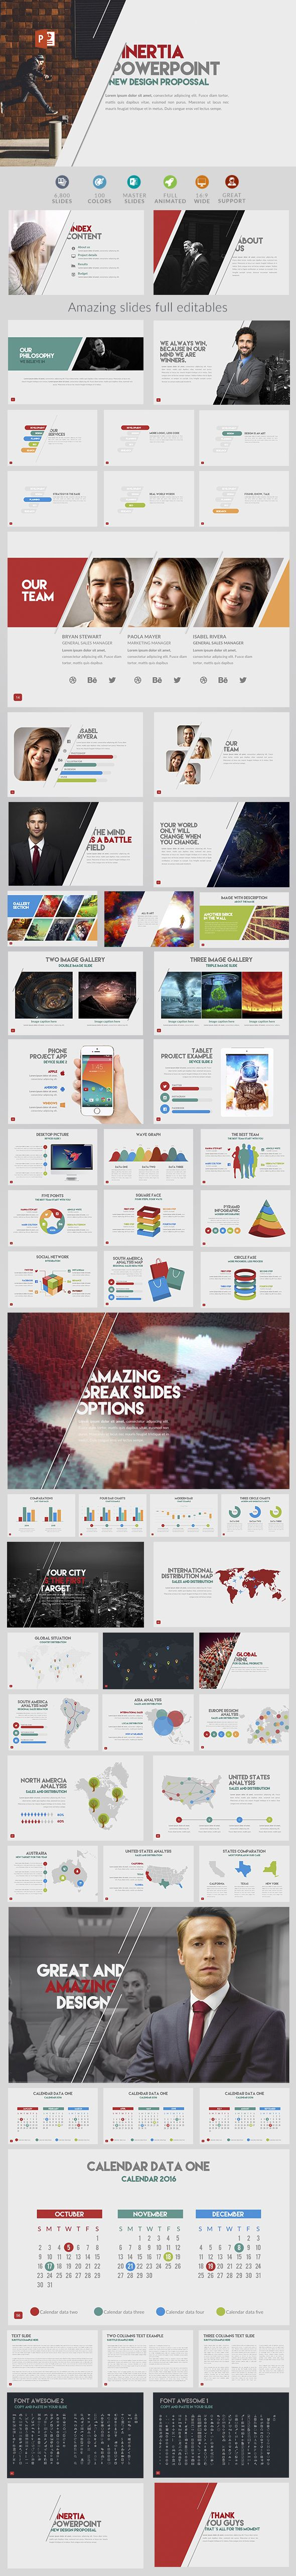 Inertia powerpoint presentation template slides download http inertia powerpoint presentation template slides download httpgraphicriver alramifo Image collections